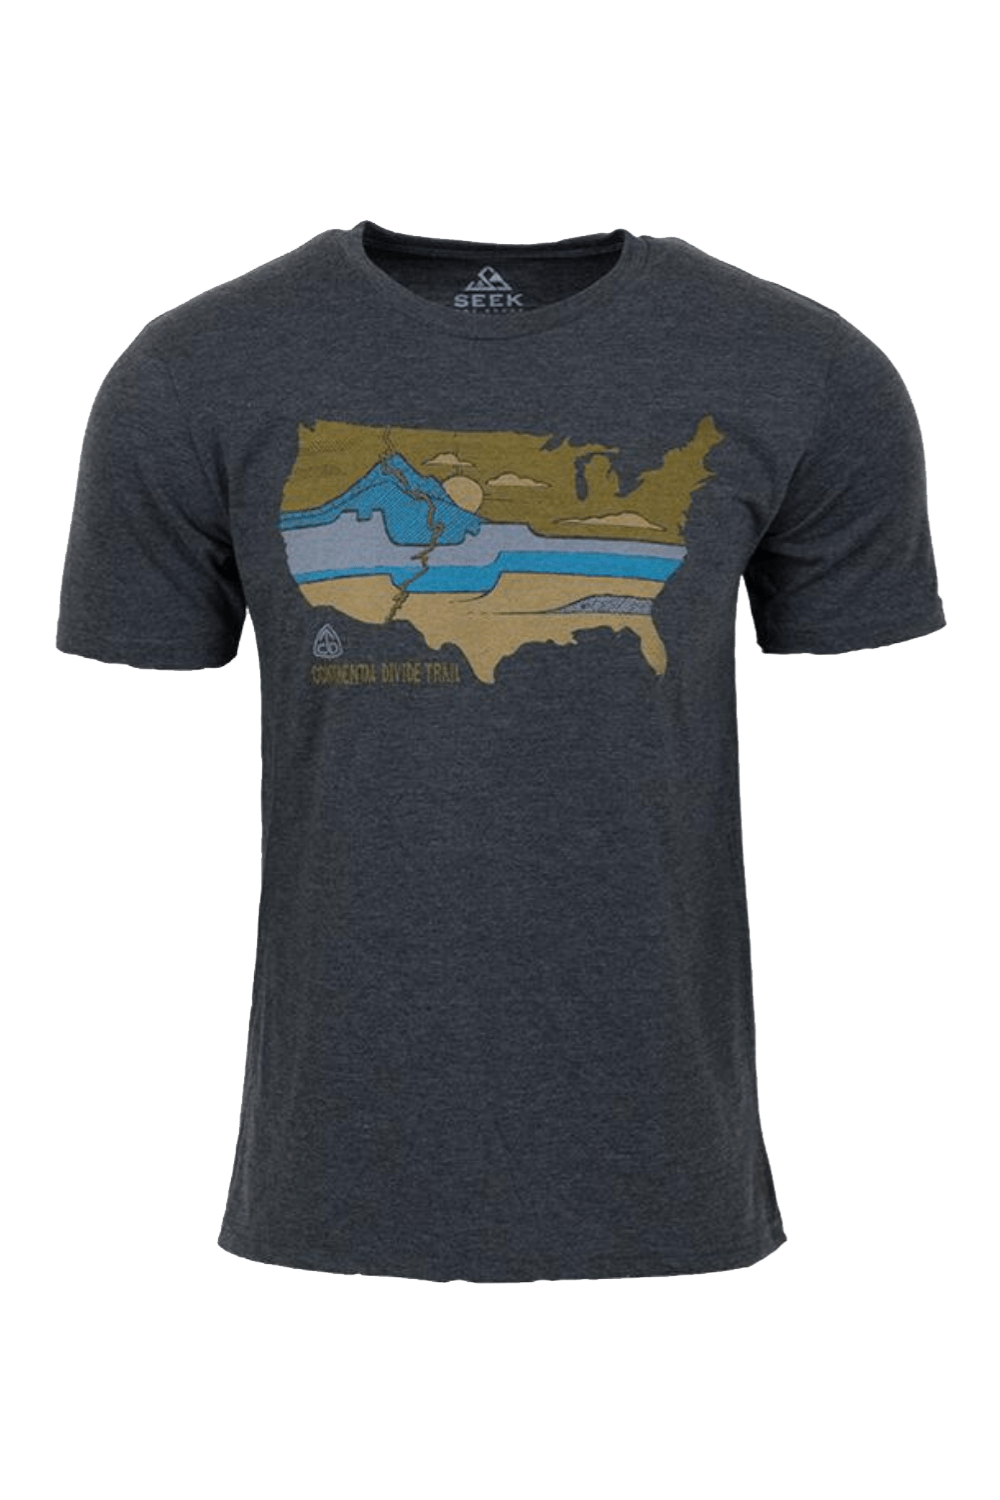 Seek Dry Goods Men's T-Shirts Continental Trail T-Shirt • Heather Coal